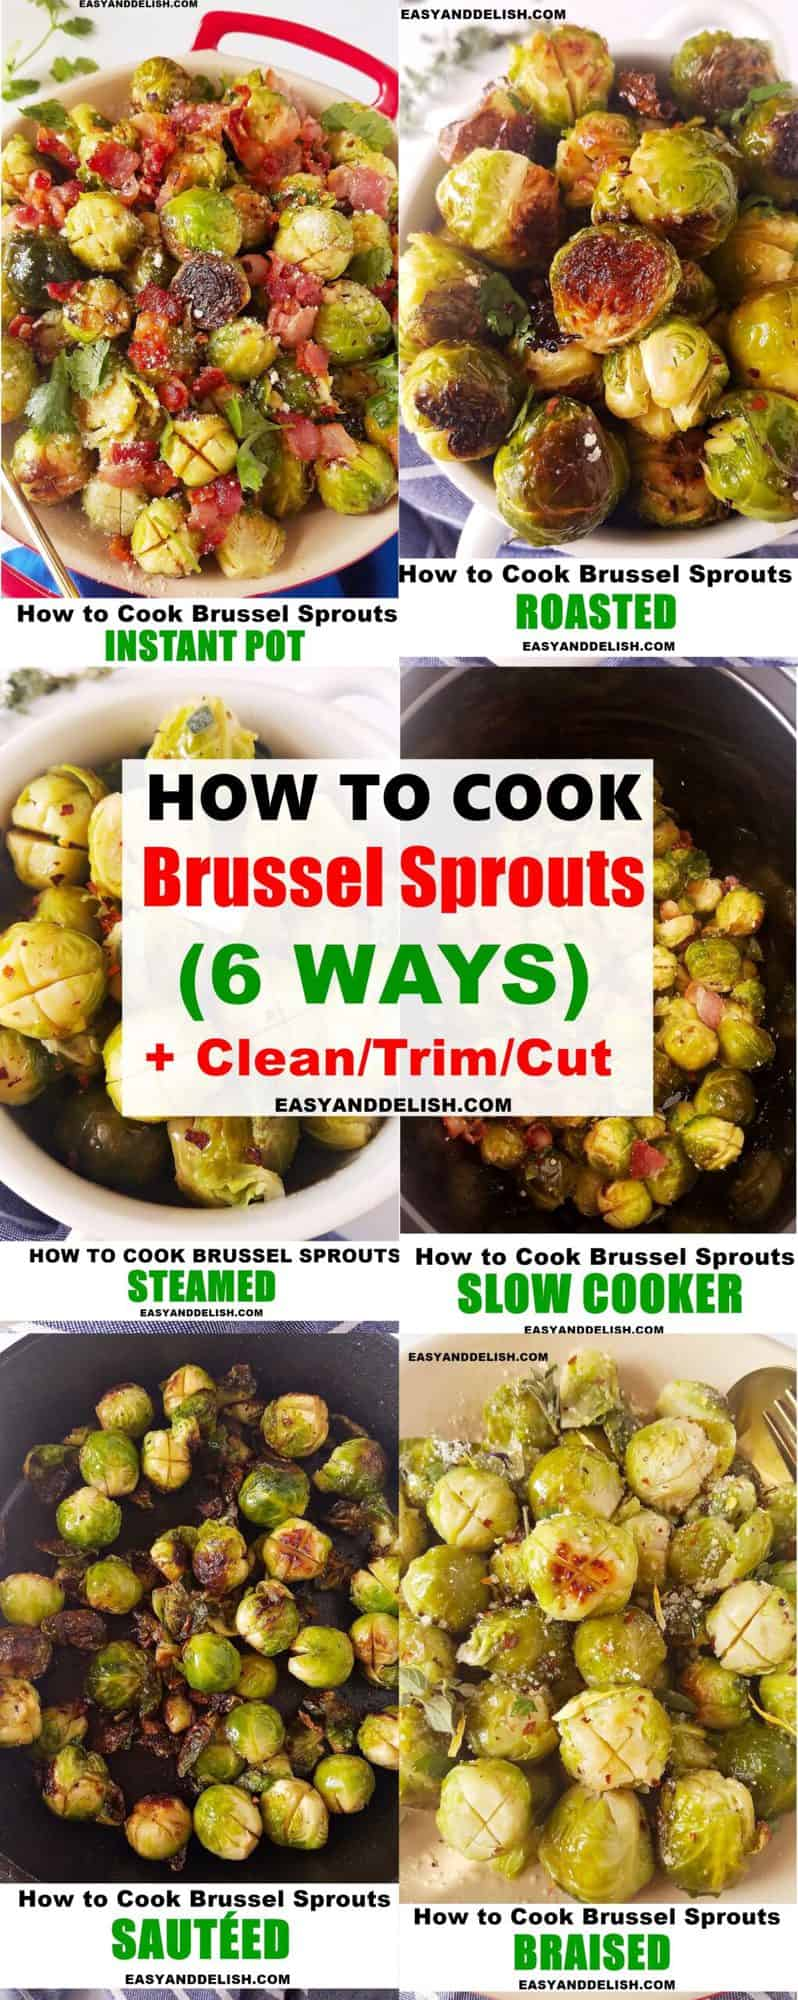 image collage showing how to cook Brussels sprouts 6 ways